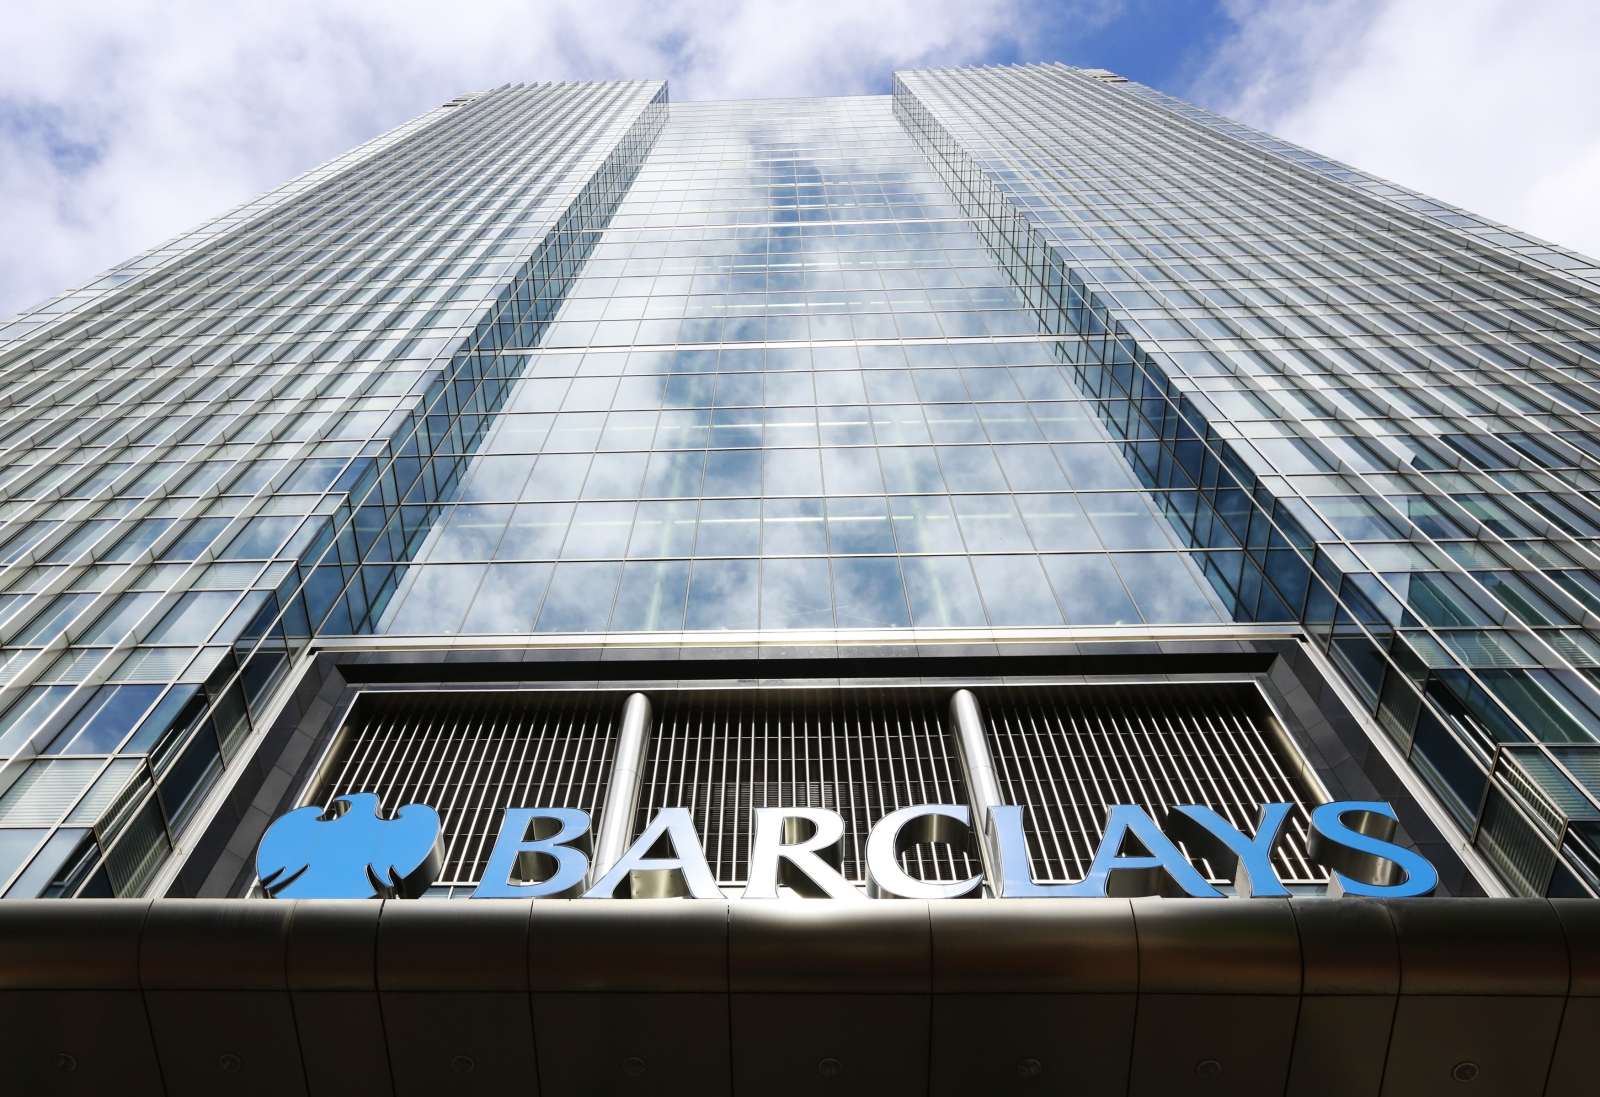 Barclays bank headquarters in Canary Wharf